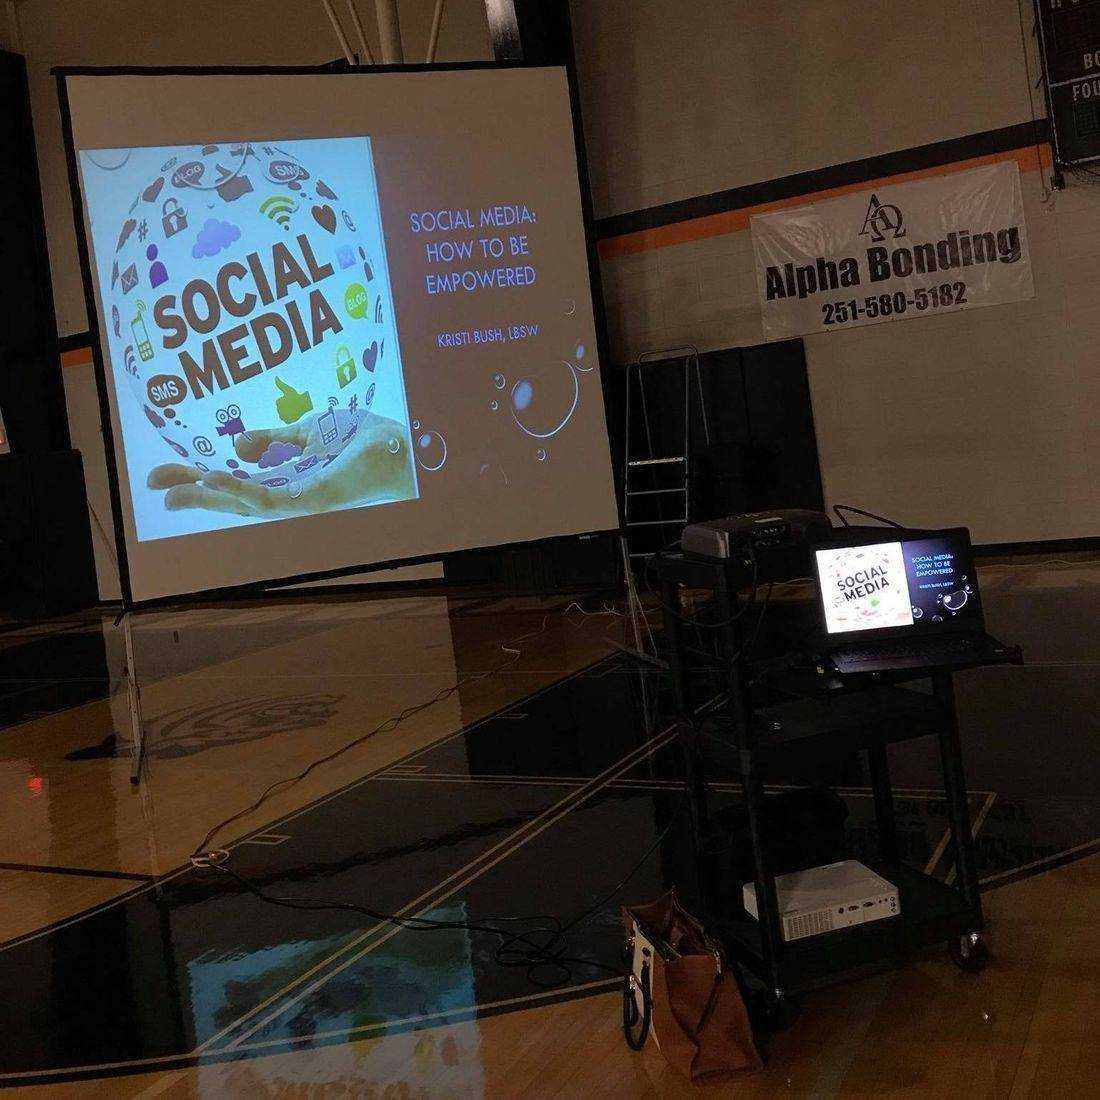 Knb social media how to be empowered